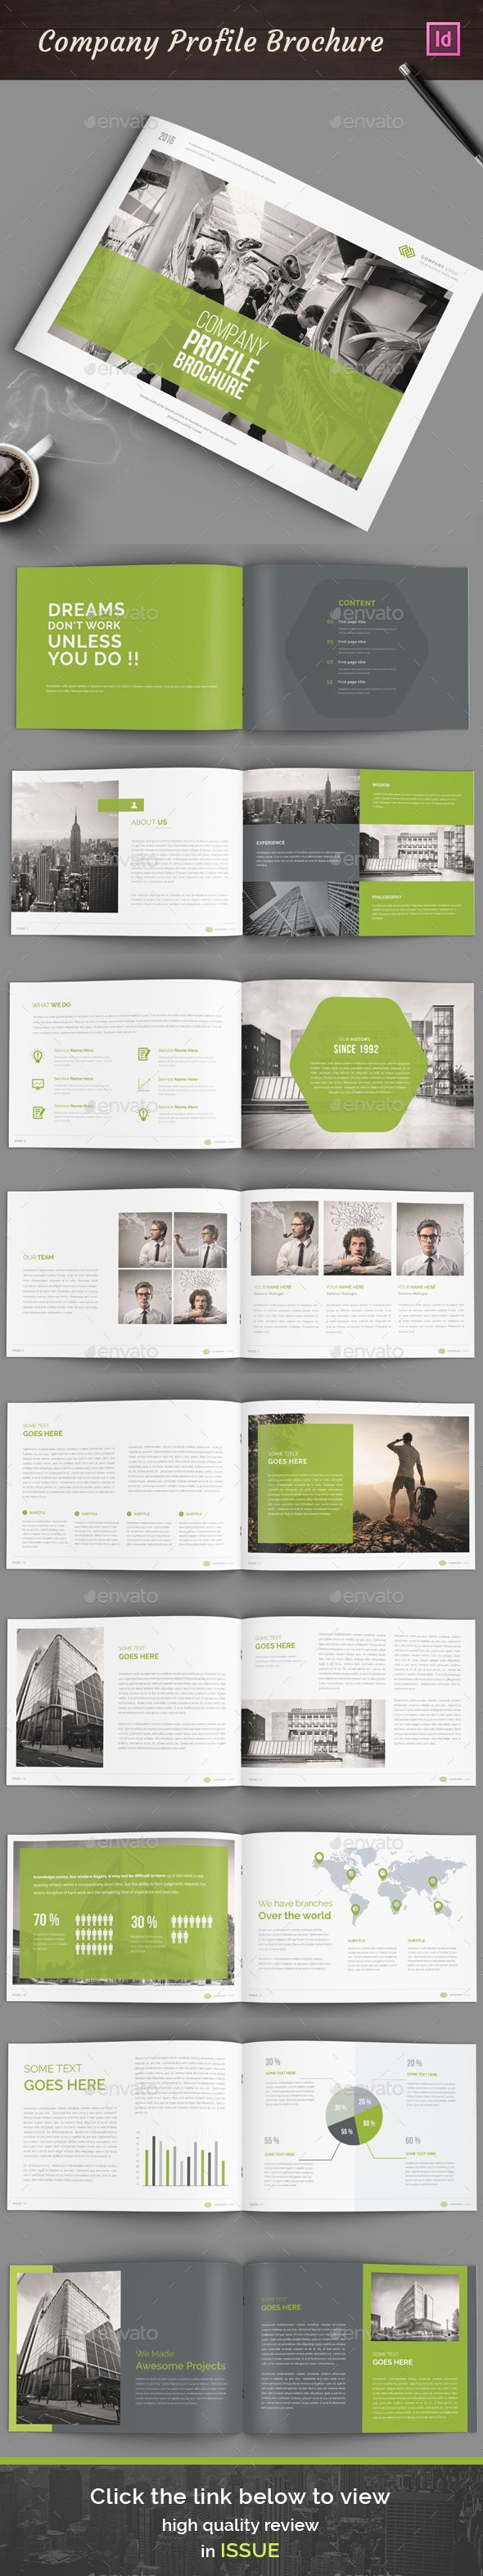 Annual Report Brochure Template InDesign INDD. Download here…